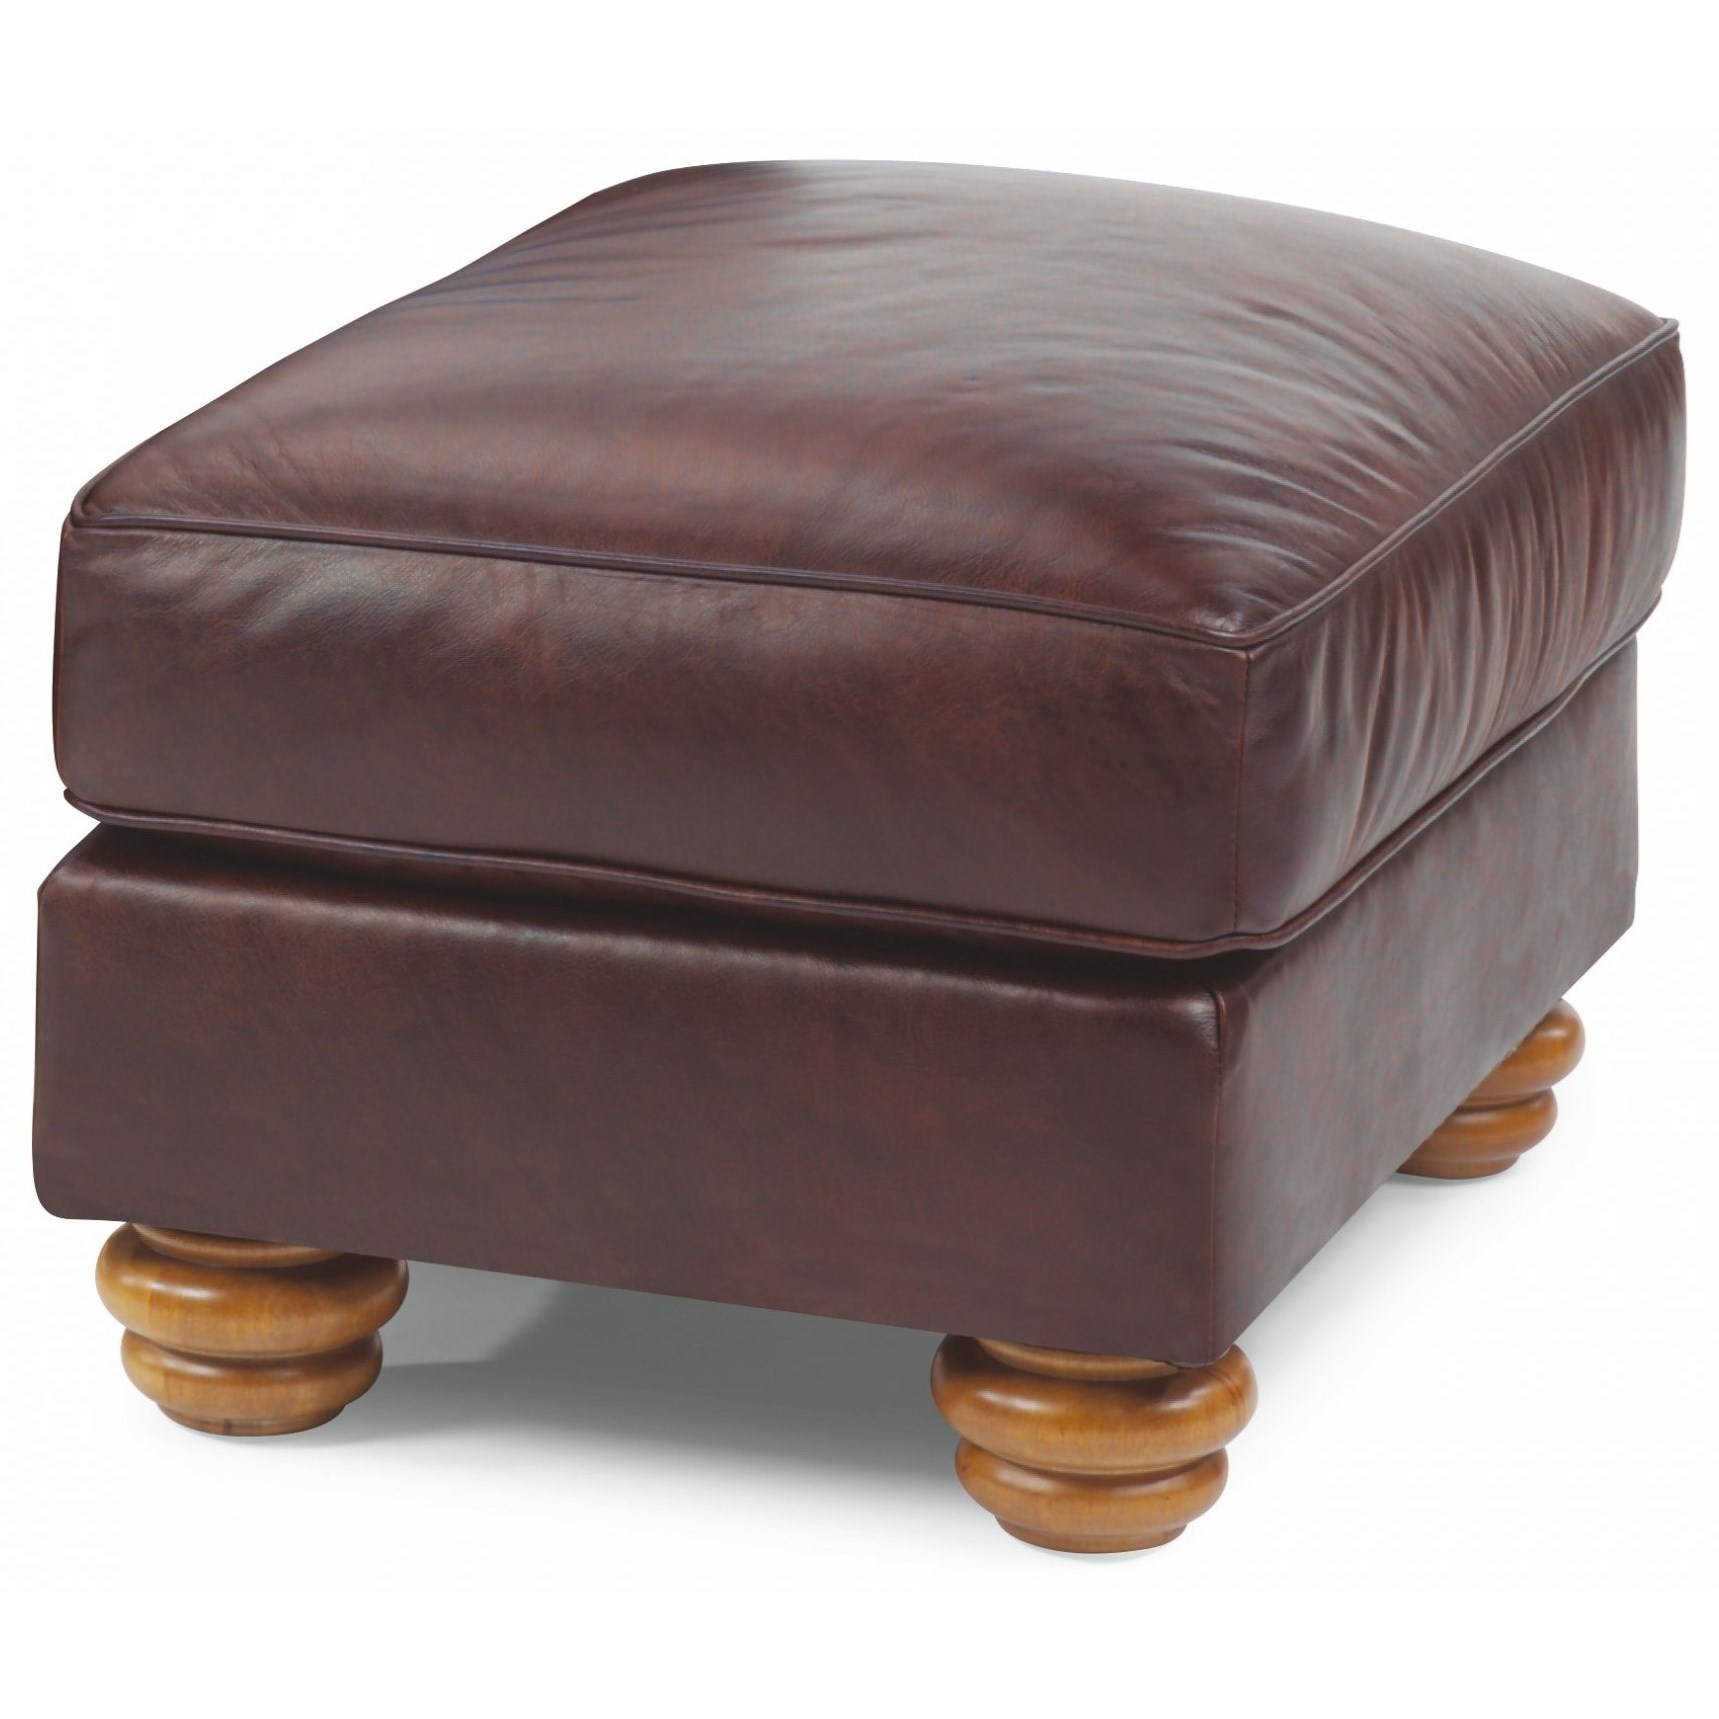 Bexley Ottoman  by Flexsteel at Steger's Furniture